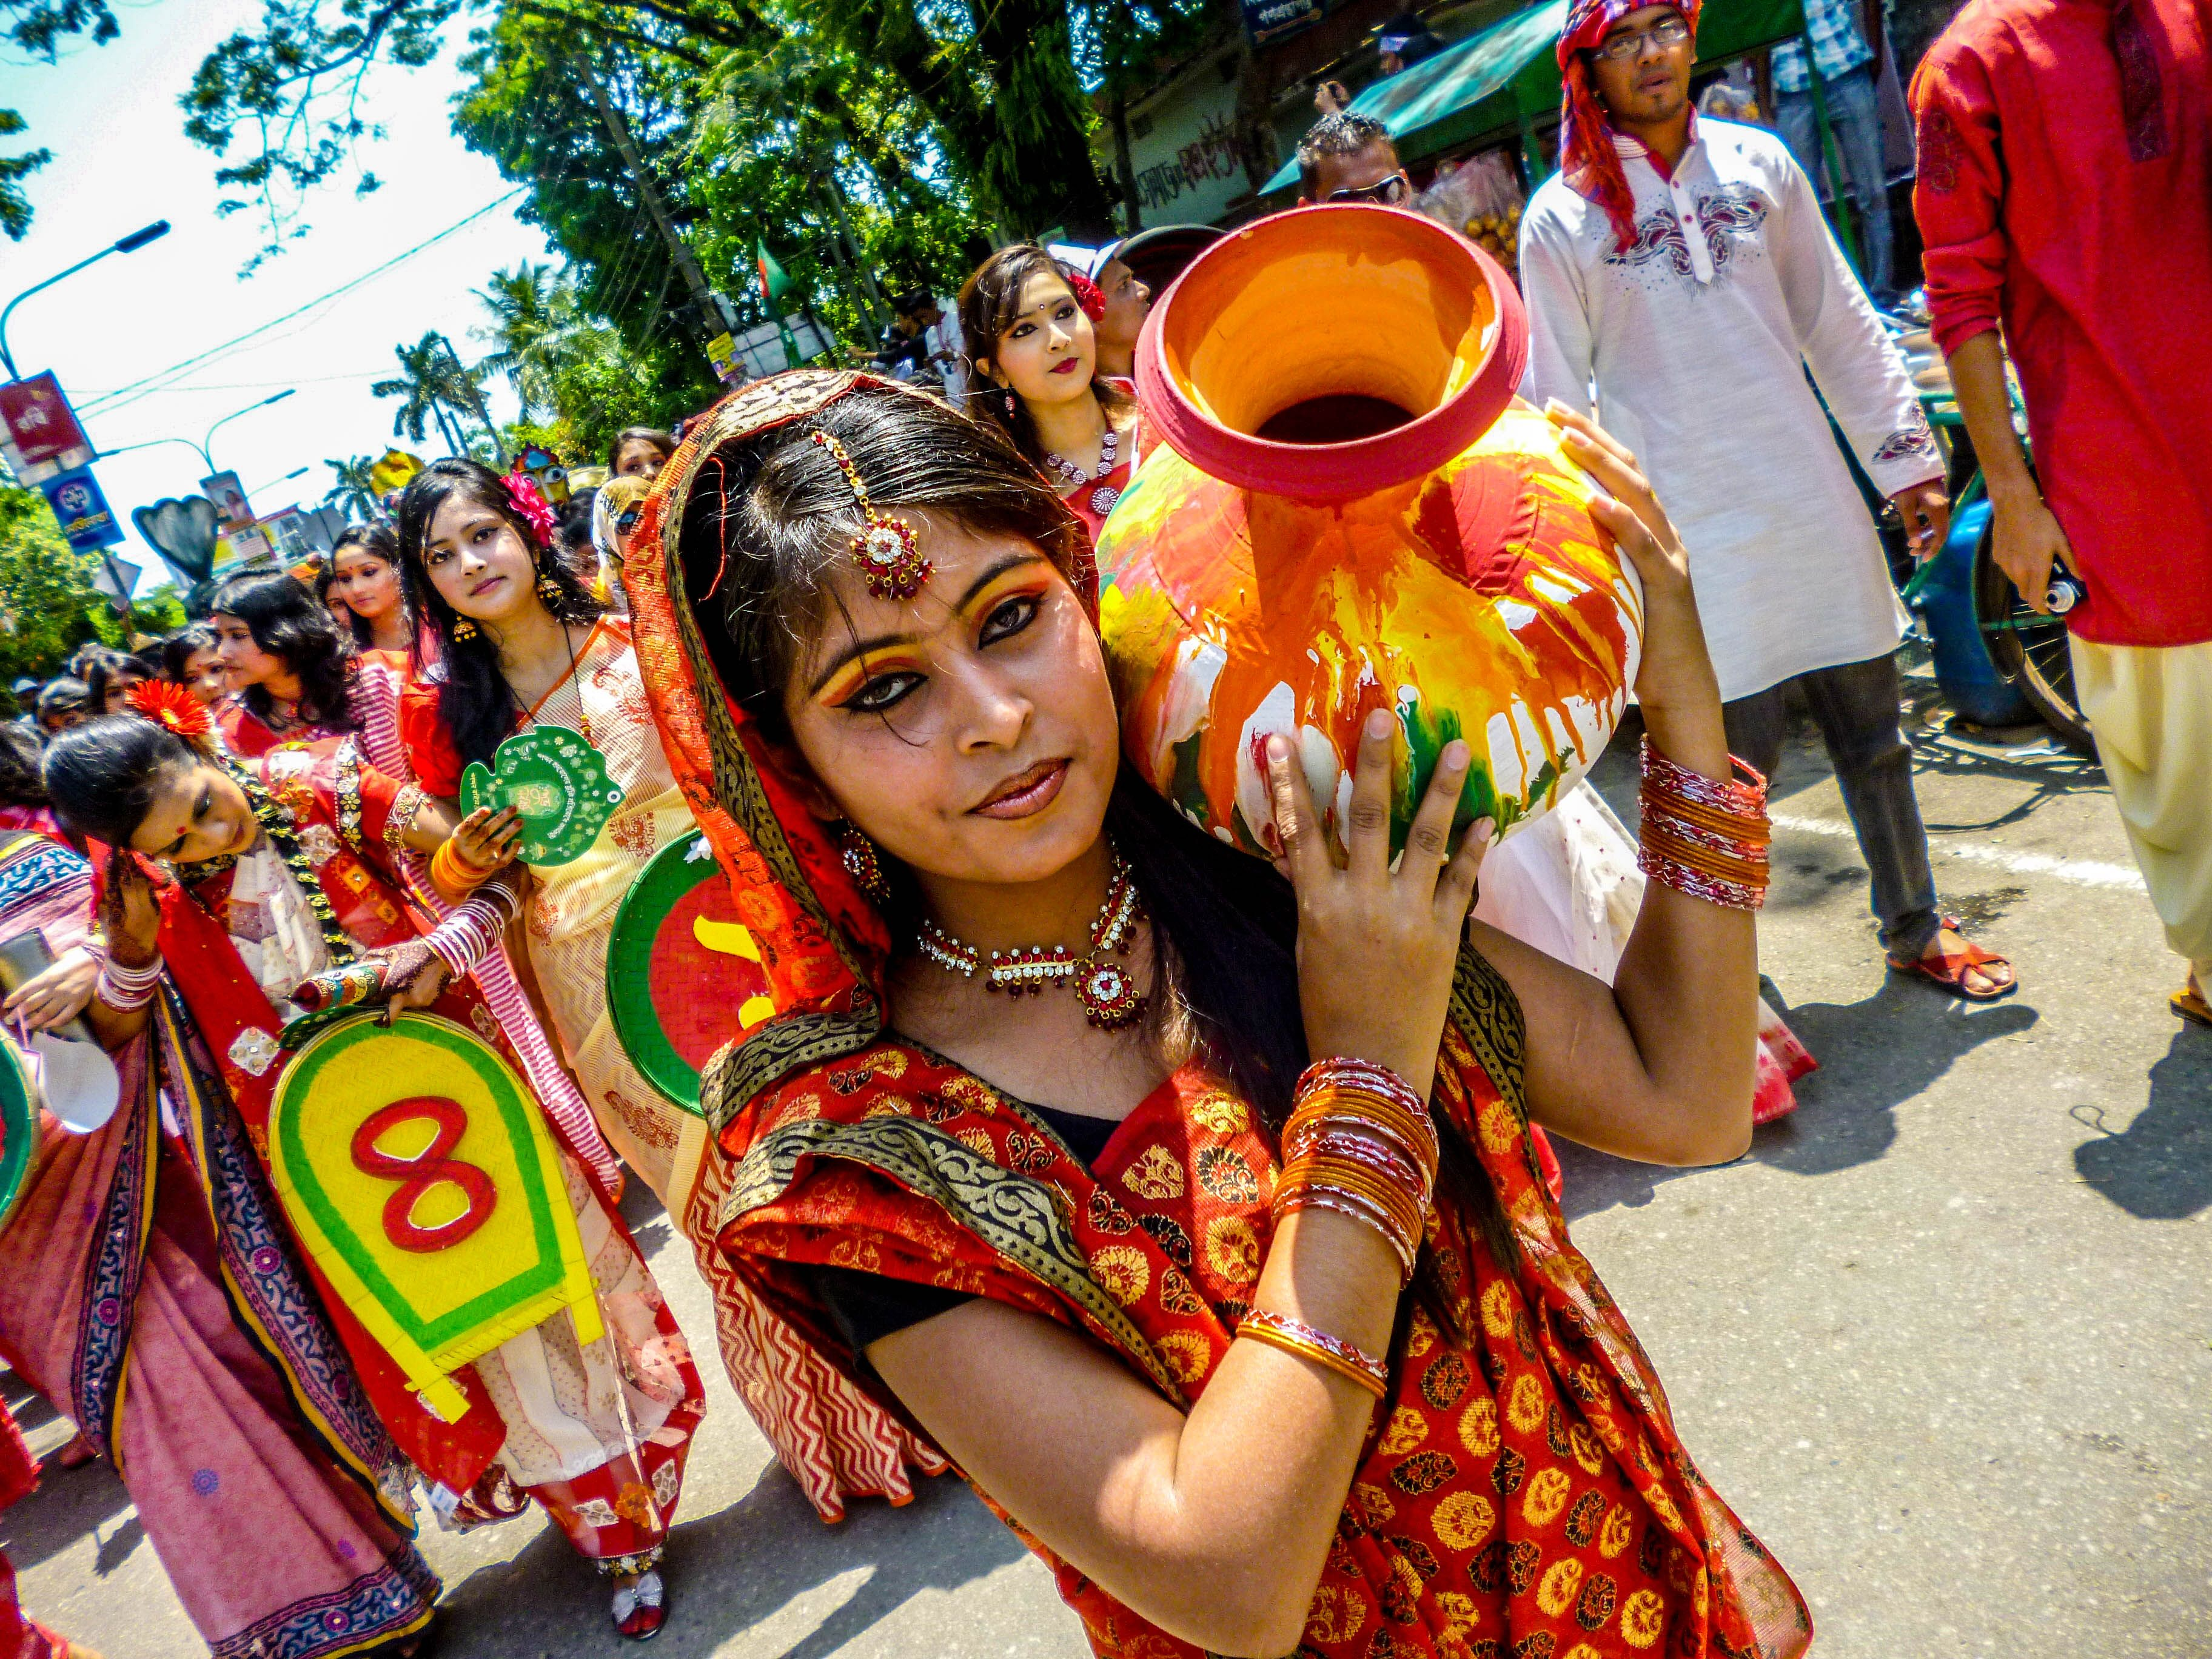 First day of spring ( pahela falgun) image by Moriom